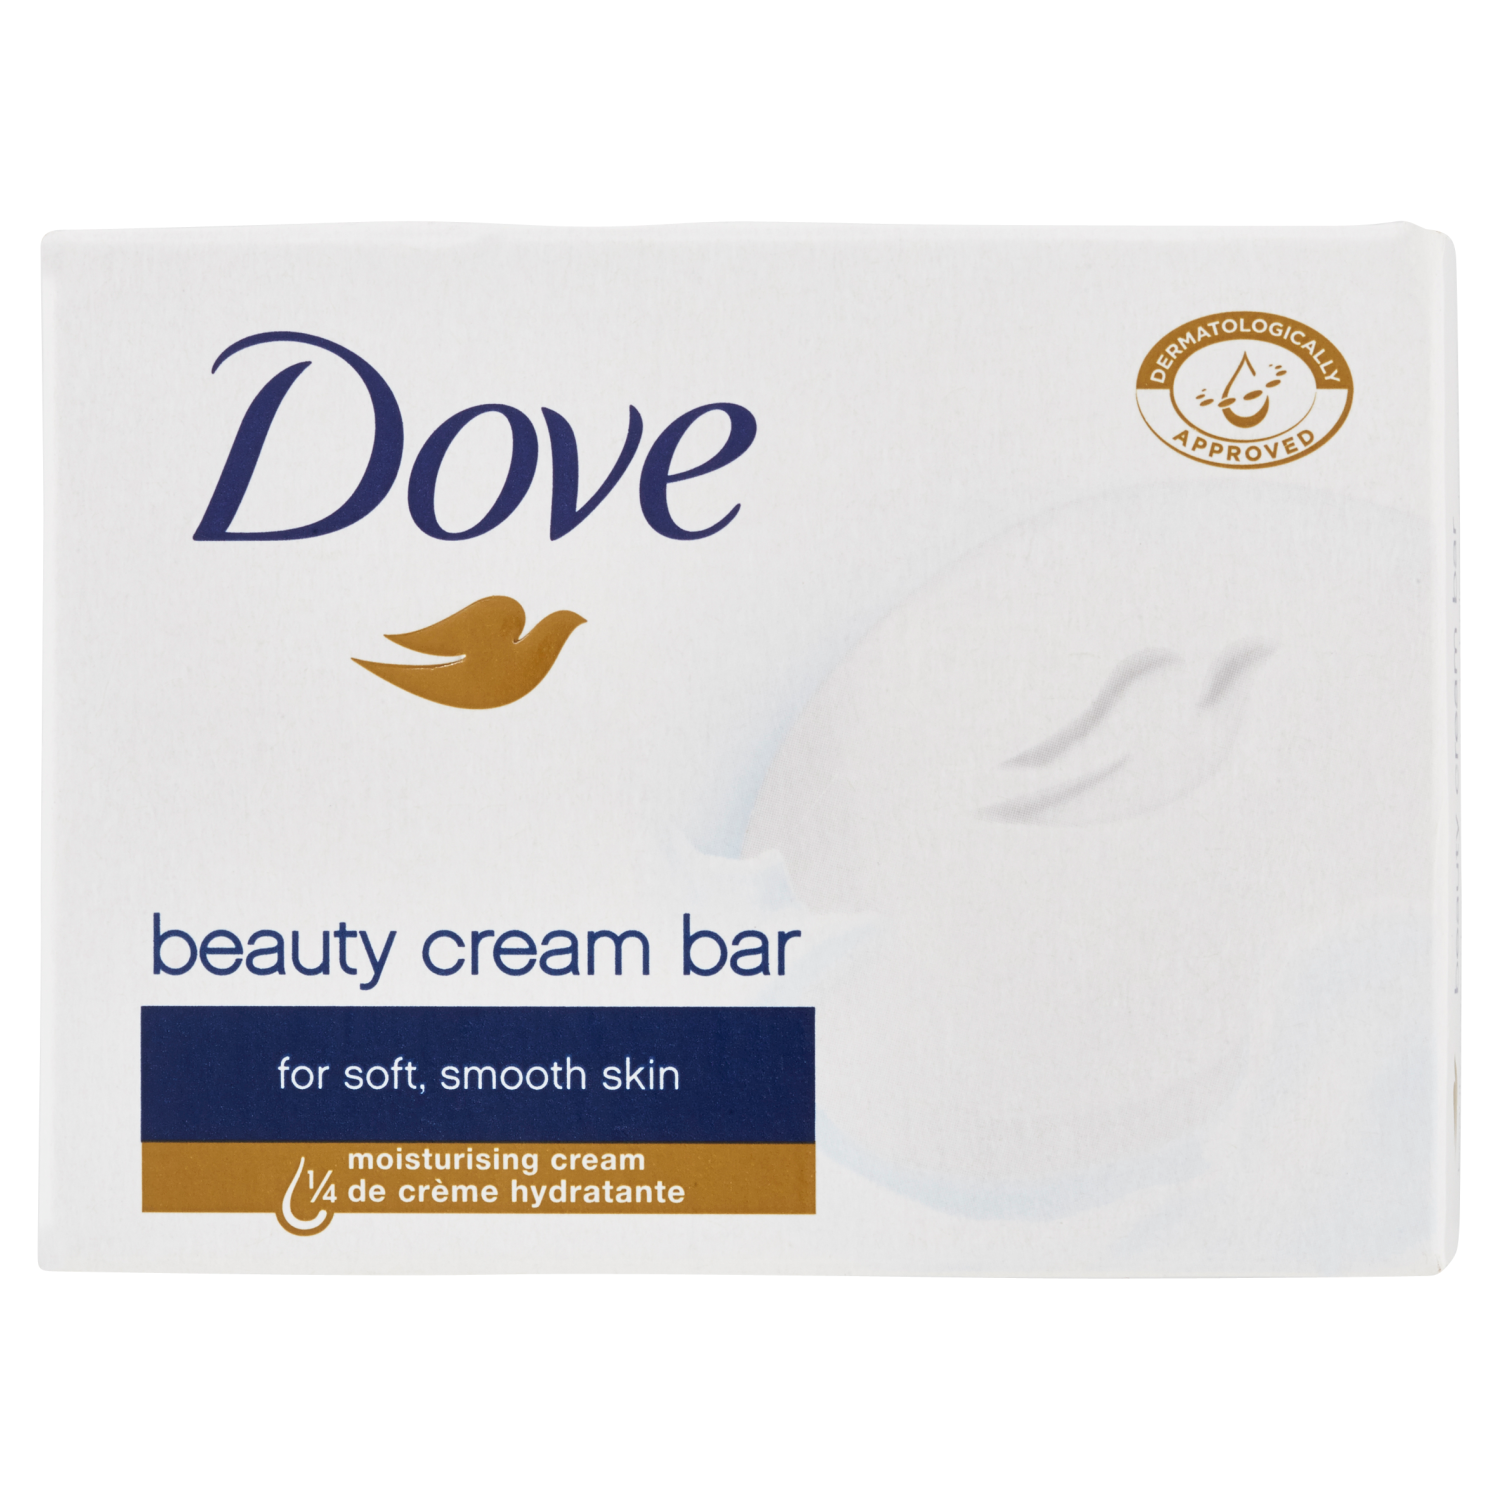 Dove Beauty Cream Bar Original 2x100g